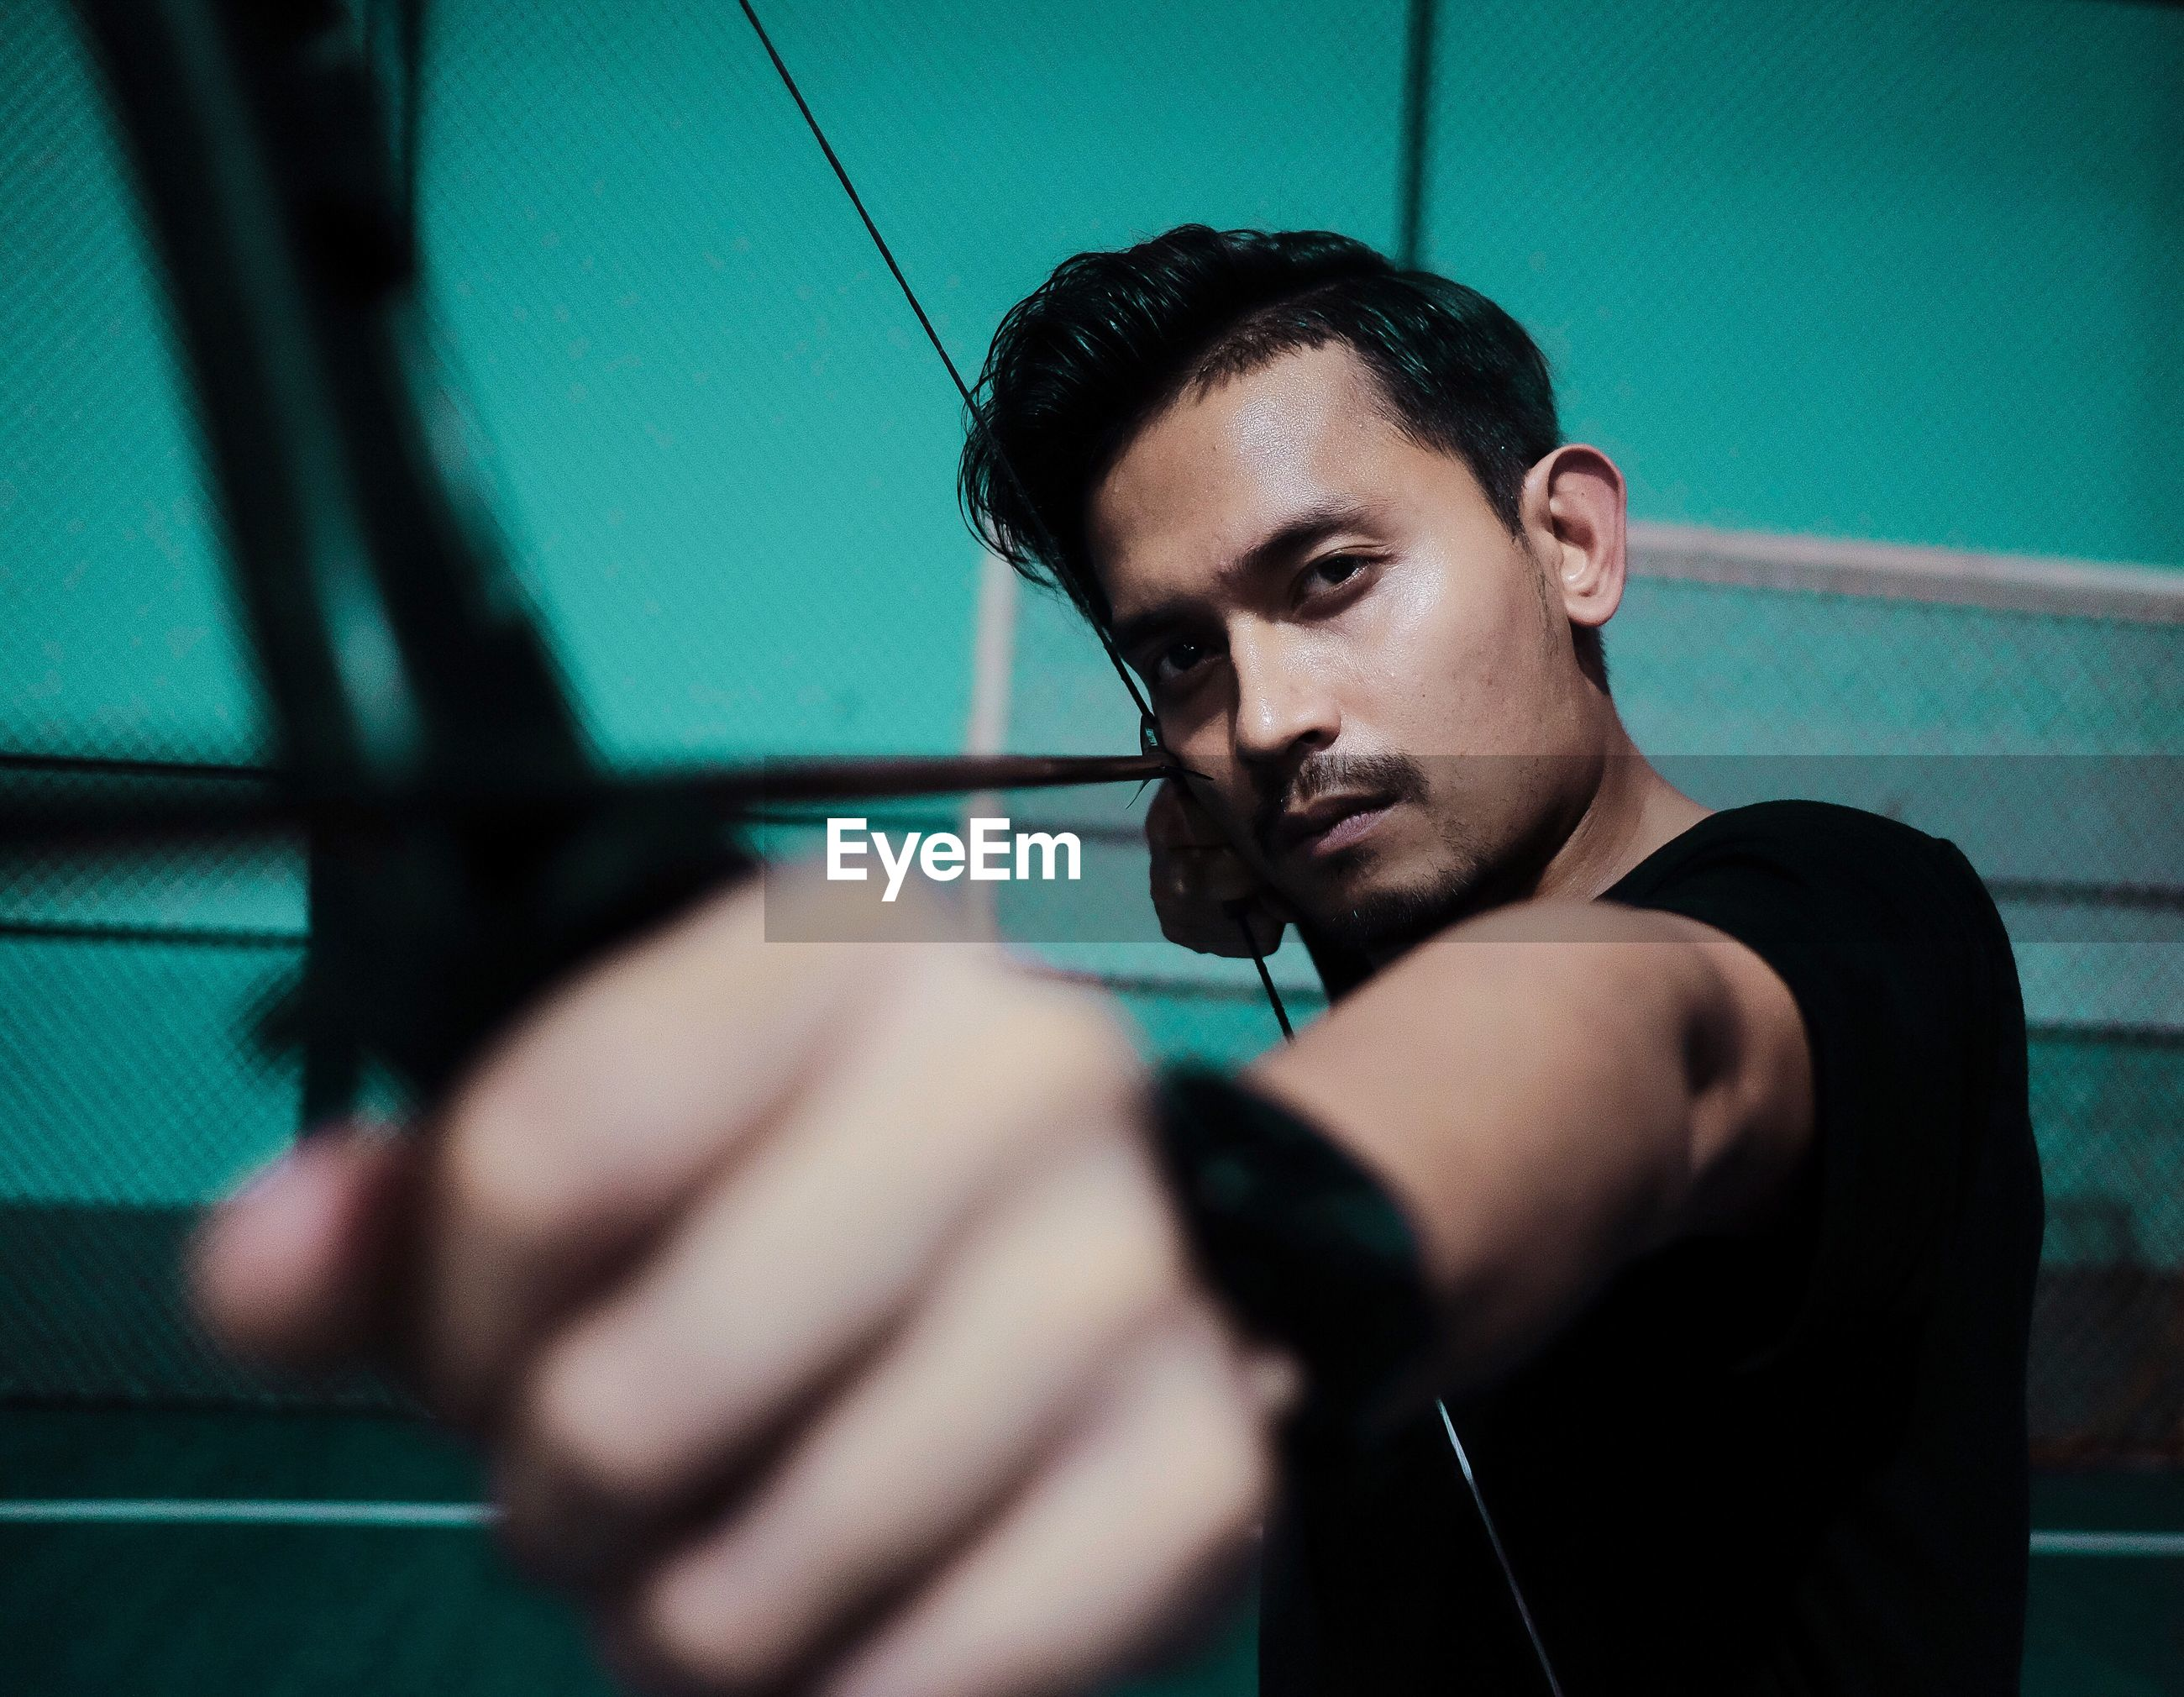 Portrait of young man holding bow and arrow